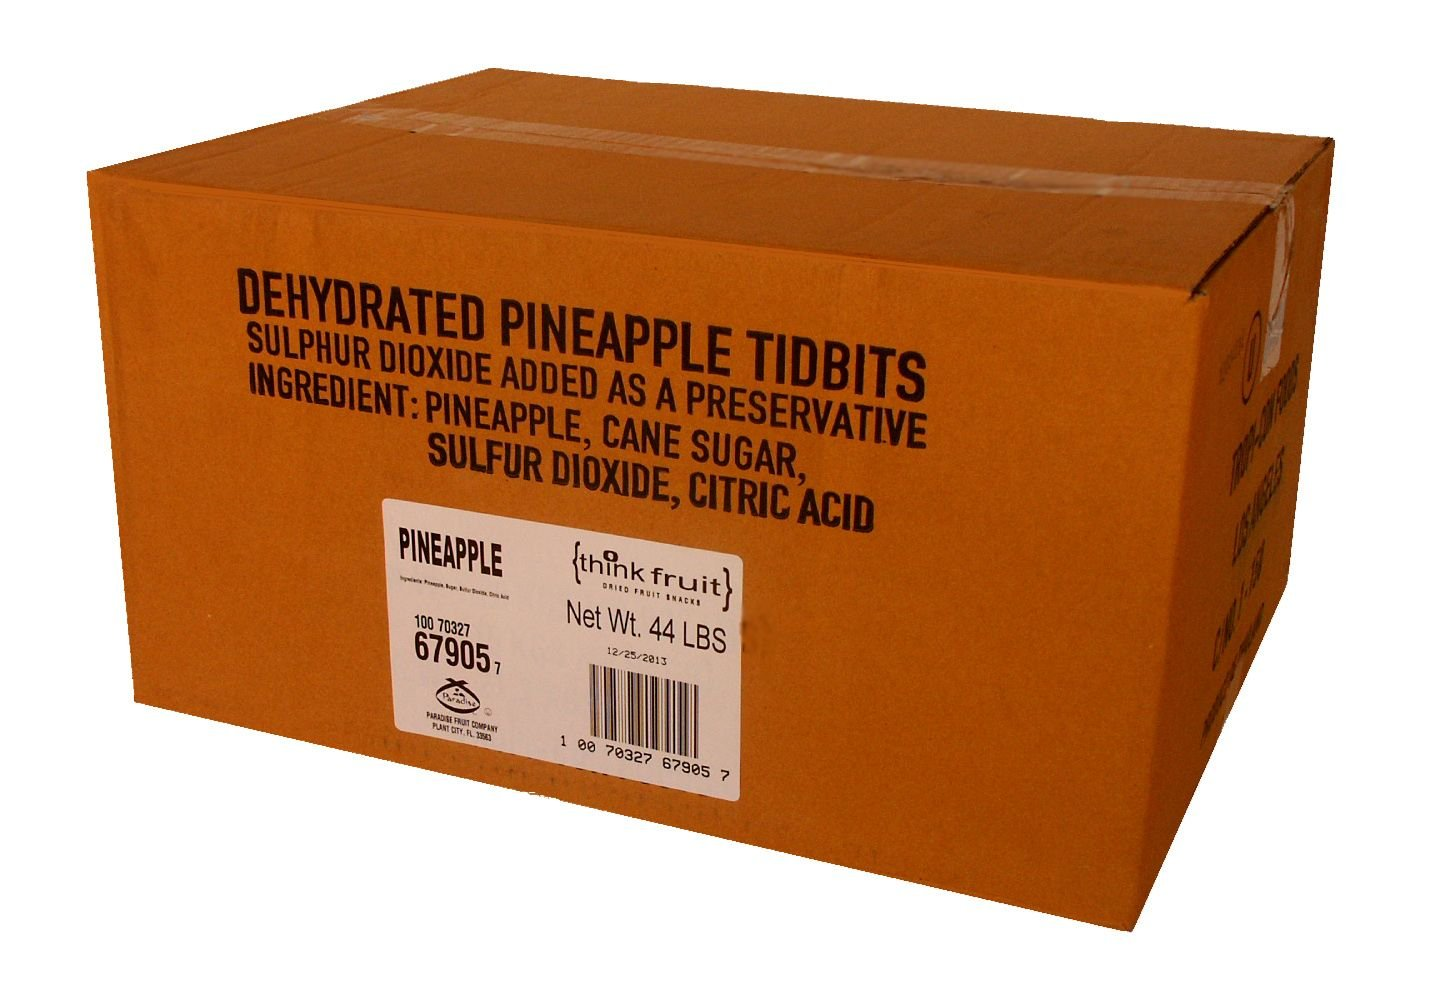 Thinkfruit Natural Dehydrated Fruit Bulk Pack, Pineapple, 44 Pound by Thinkfruit